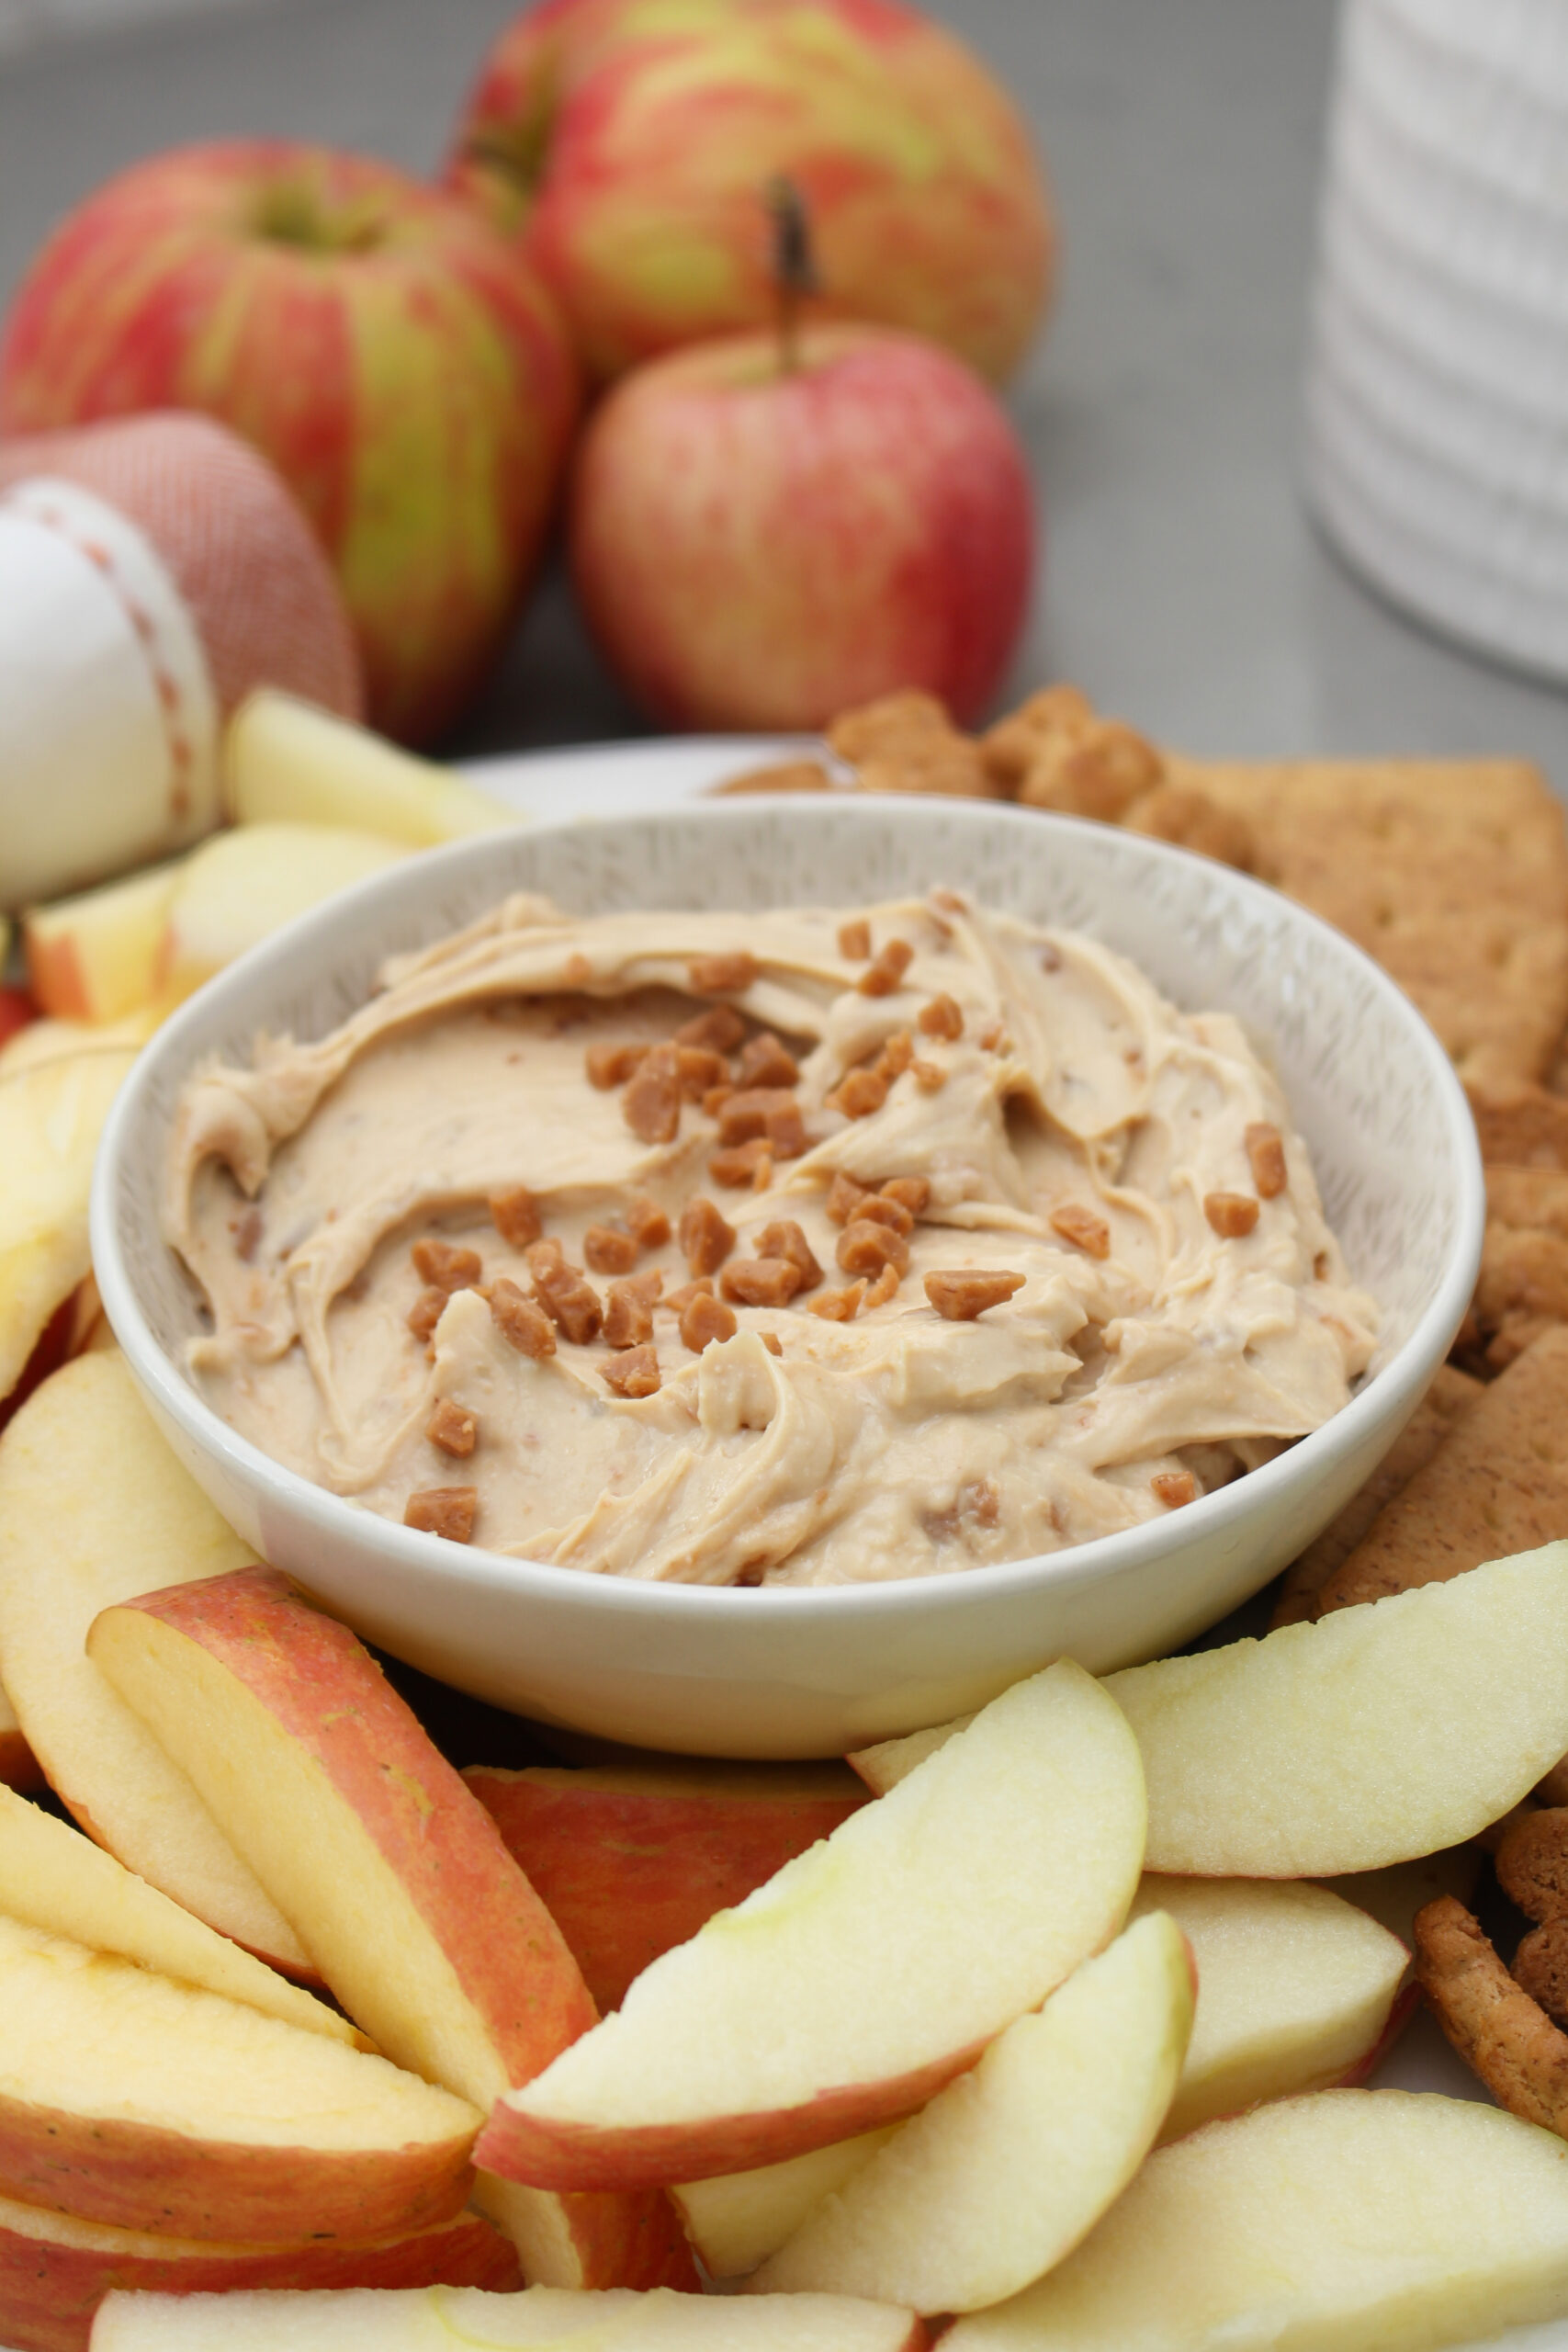 Cream cheese apple dip on a plate with apples and graham crackers.